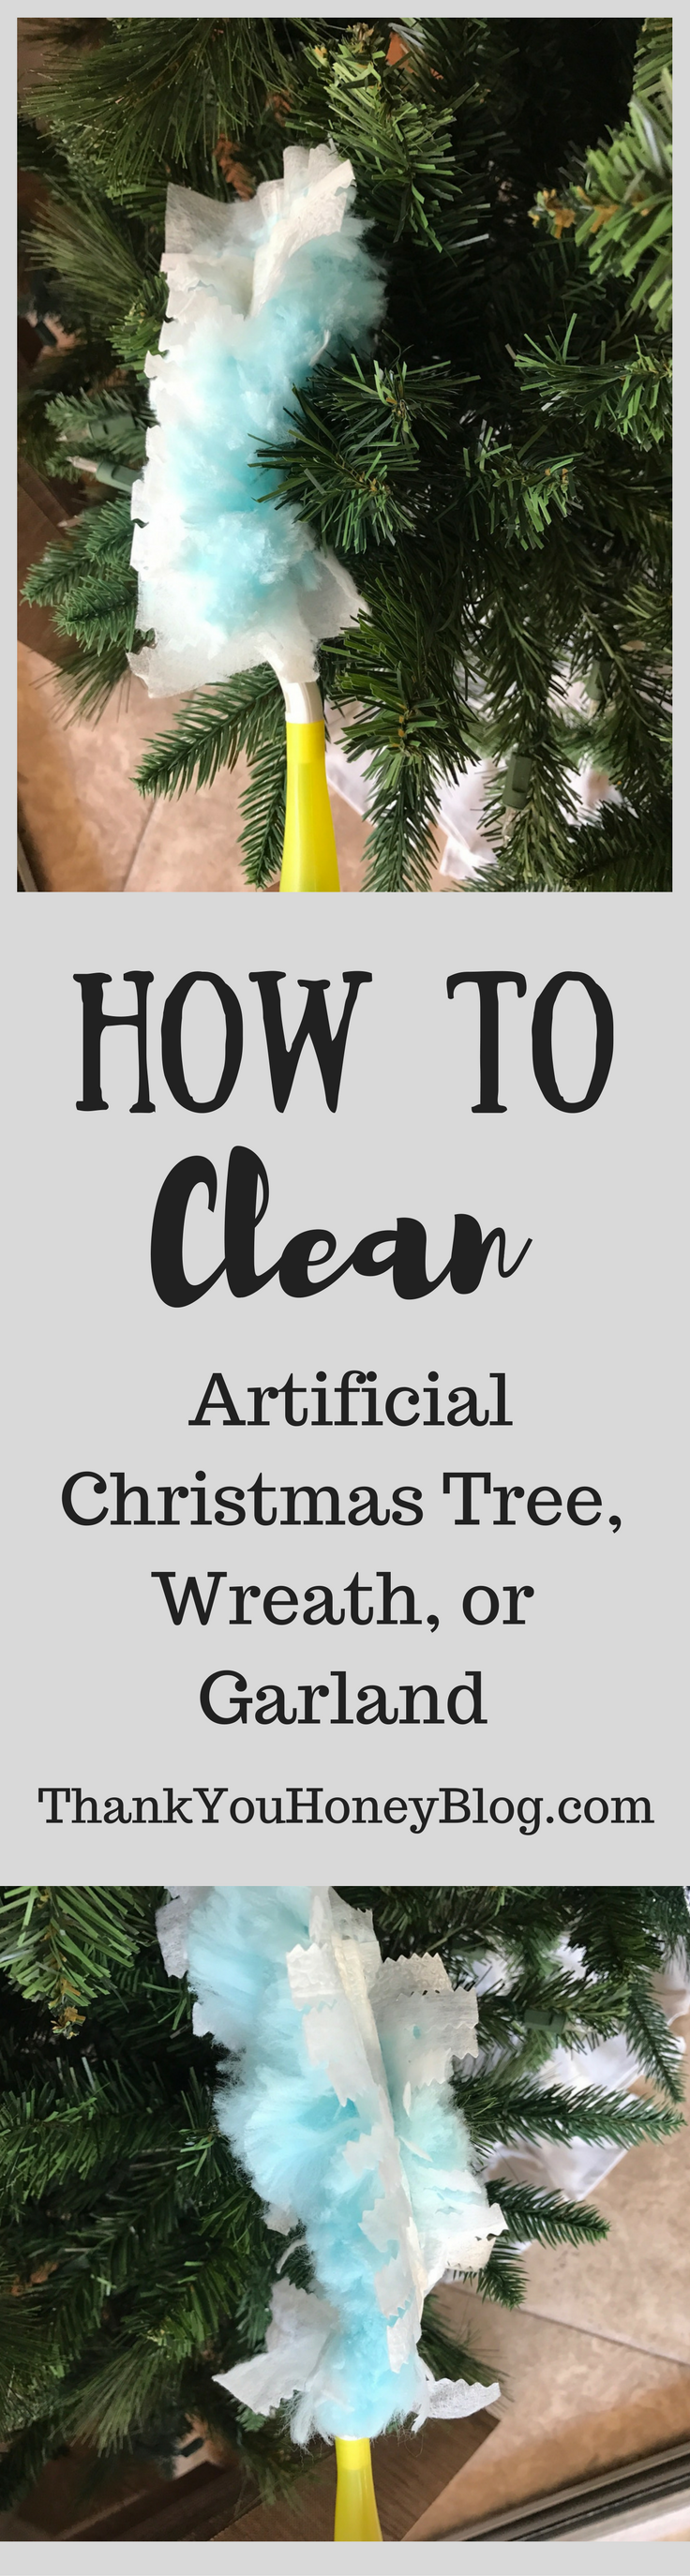 Tips for Cleaning an Artificial Christmas Tree